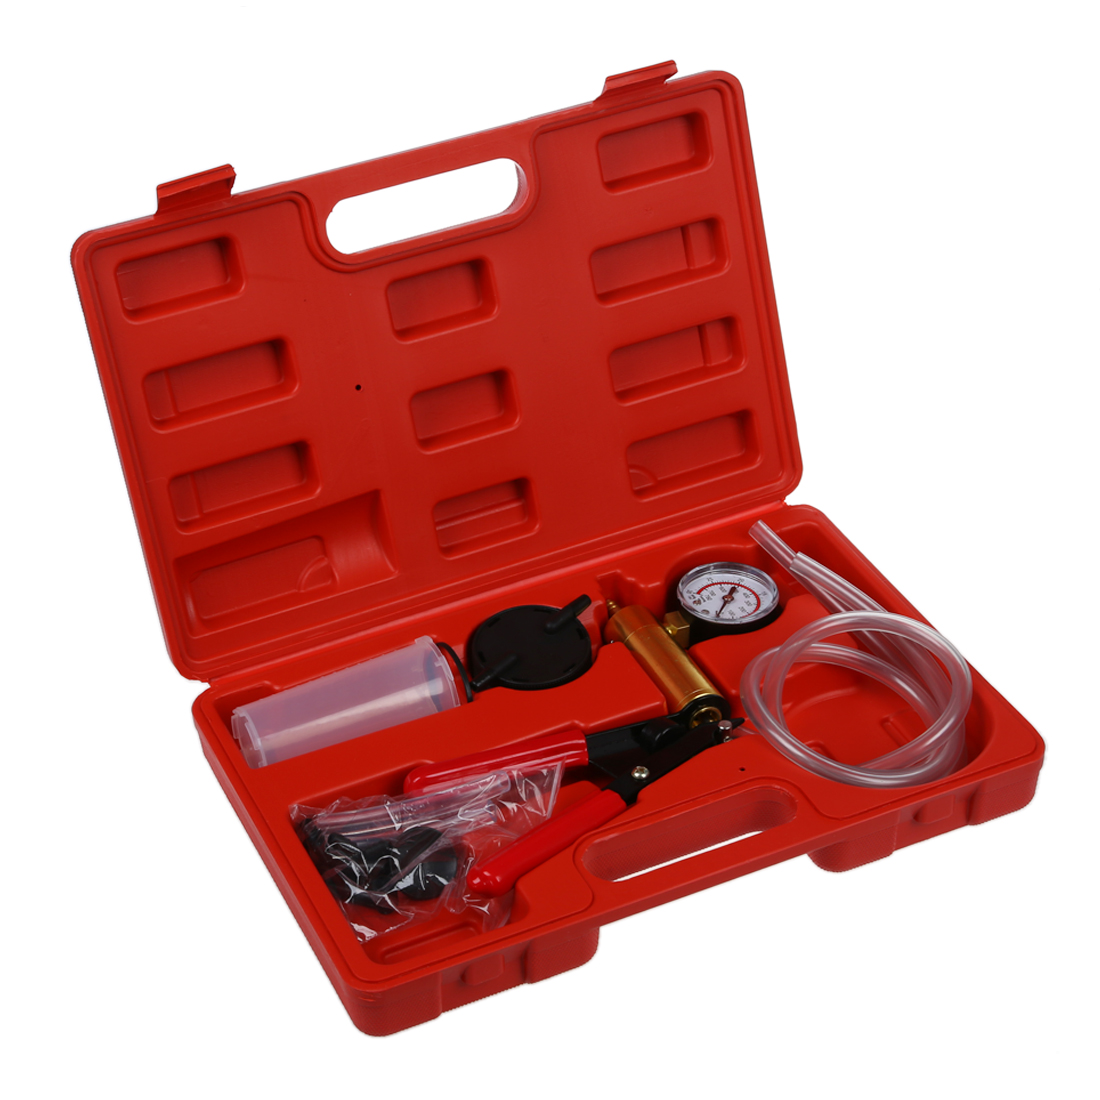 Vacuum Tester, Vacuum Pump Kit, Car Tool, Vacuum Testing Tool and Brake Bleeder